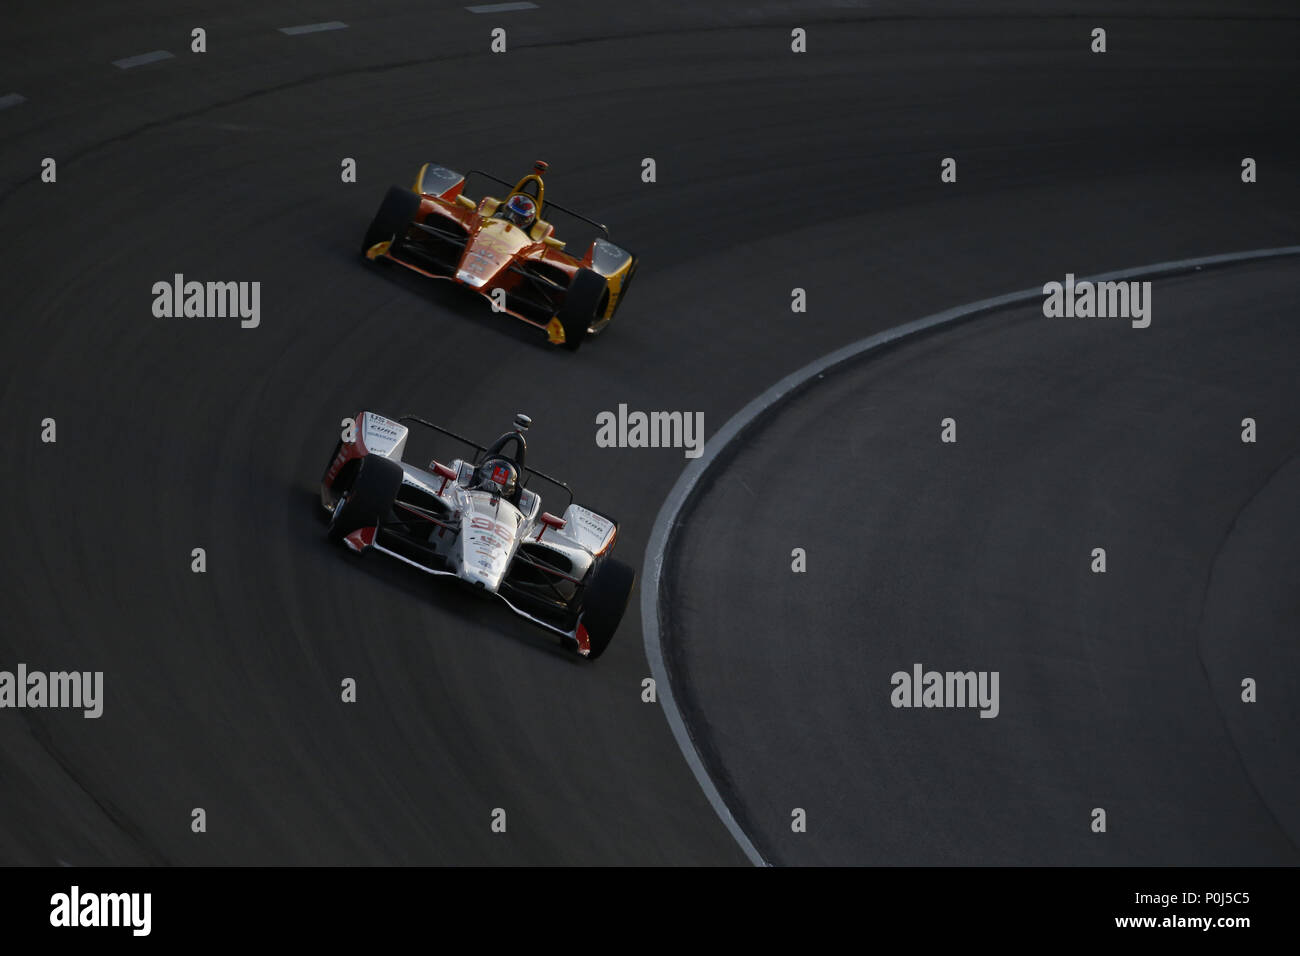 Fort Worth, Texas, USA. 9th June, 2018. MARCO ANDRETTI (98) of the ...